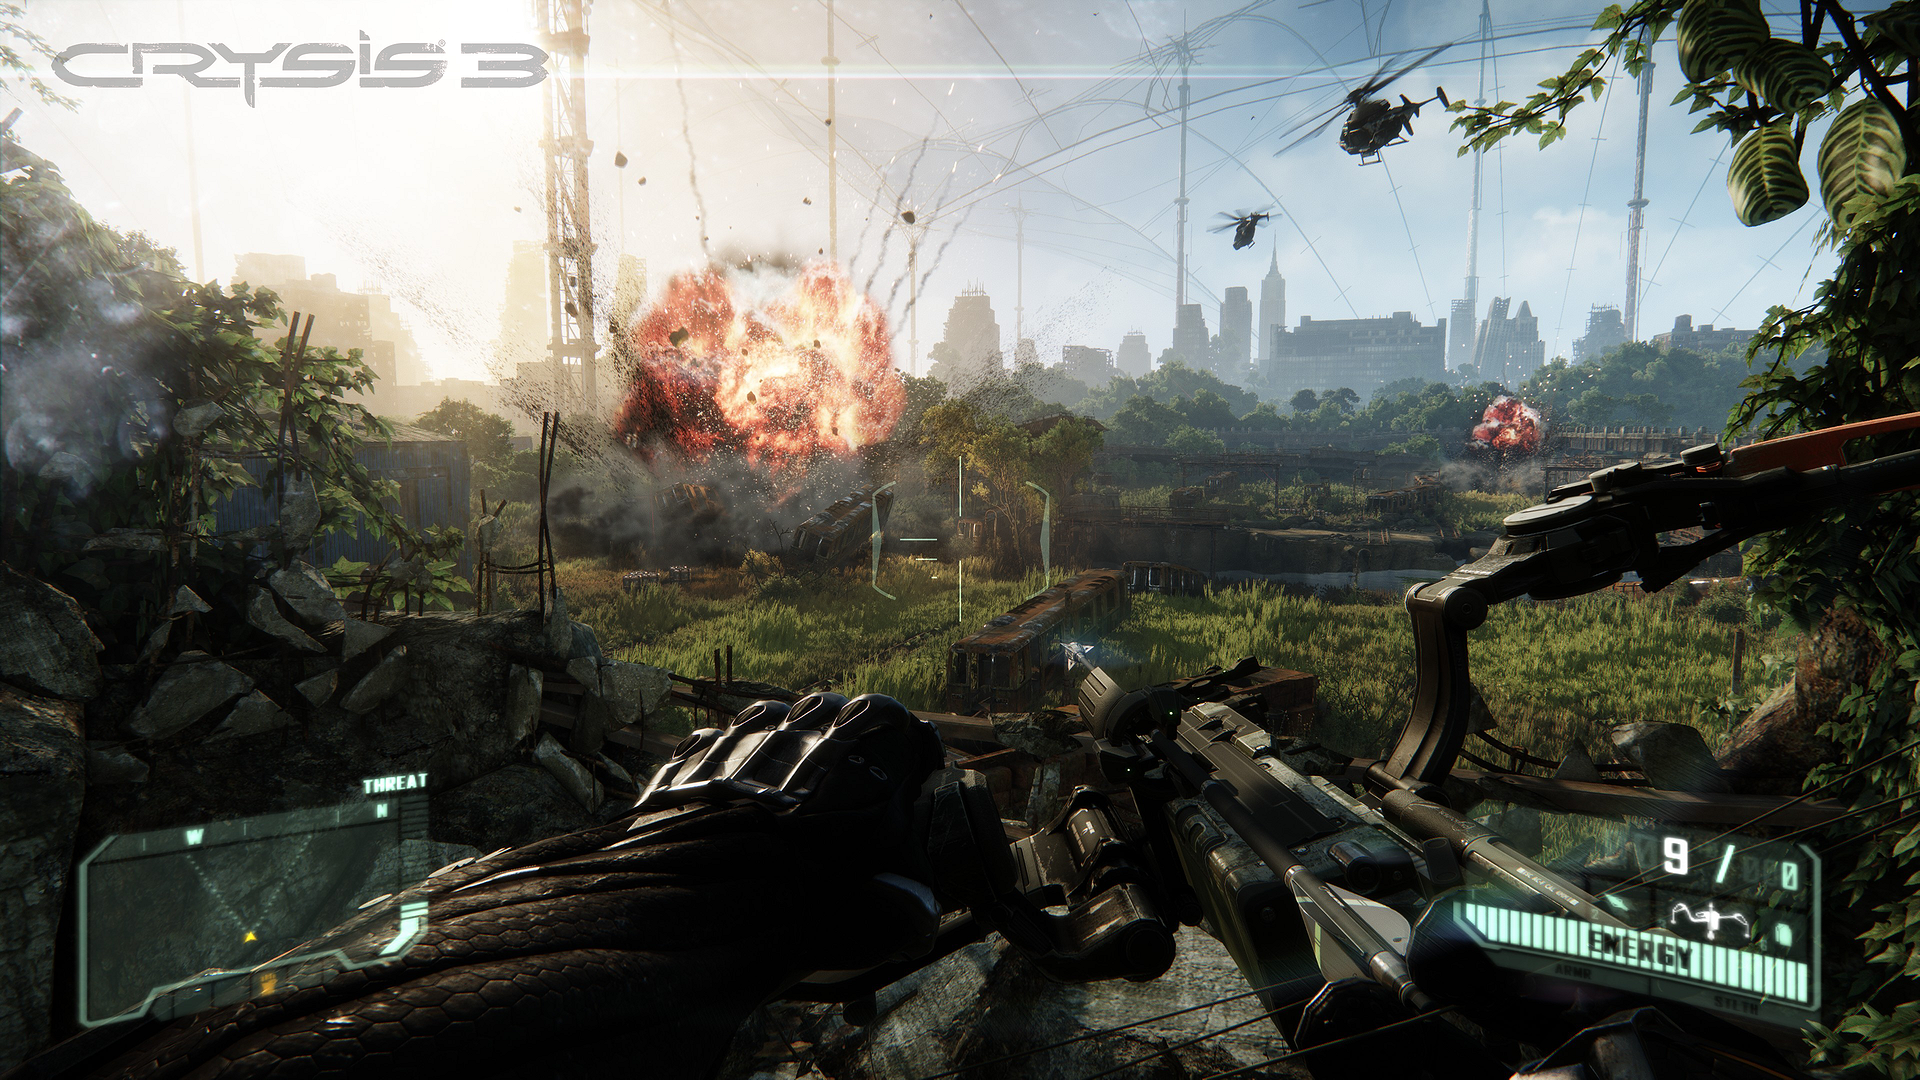 Crysis 3 Review | Compromise, Sacrifice & A Wonderful Wardrobe